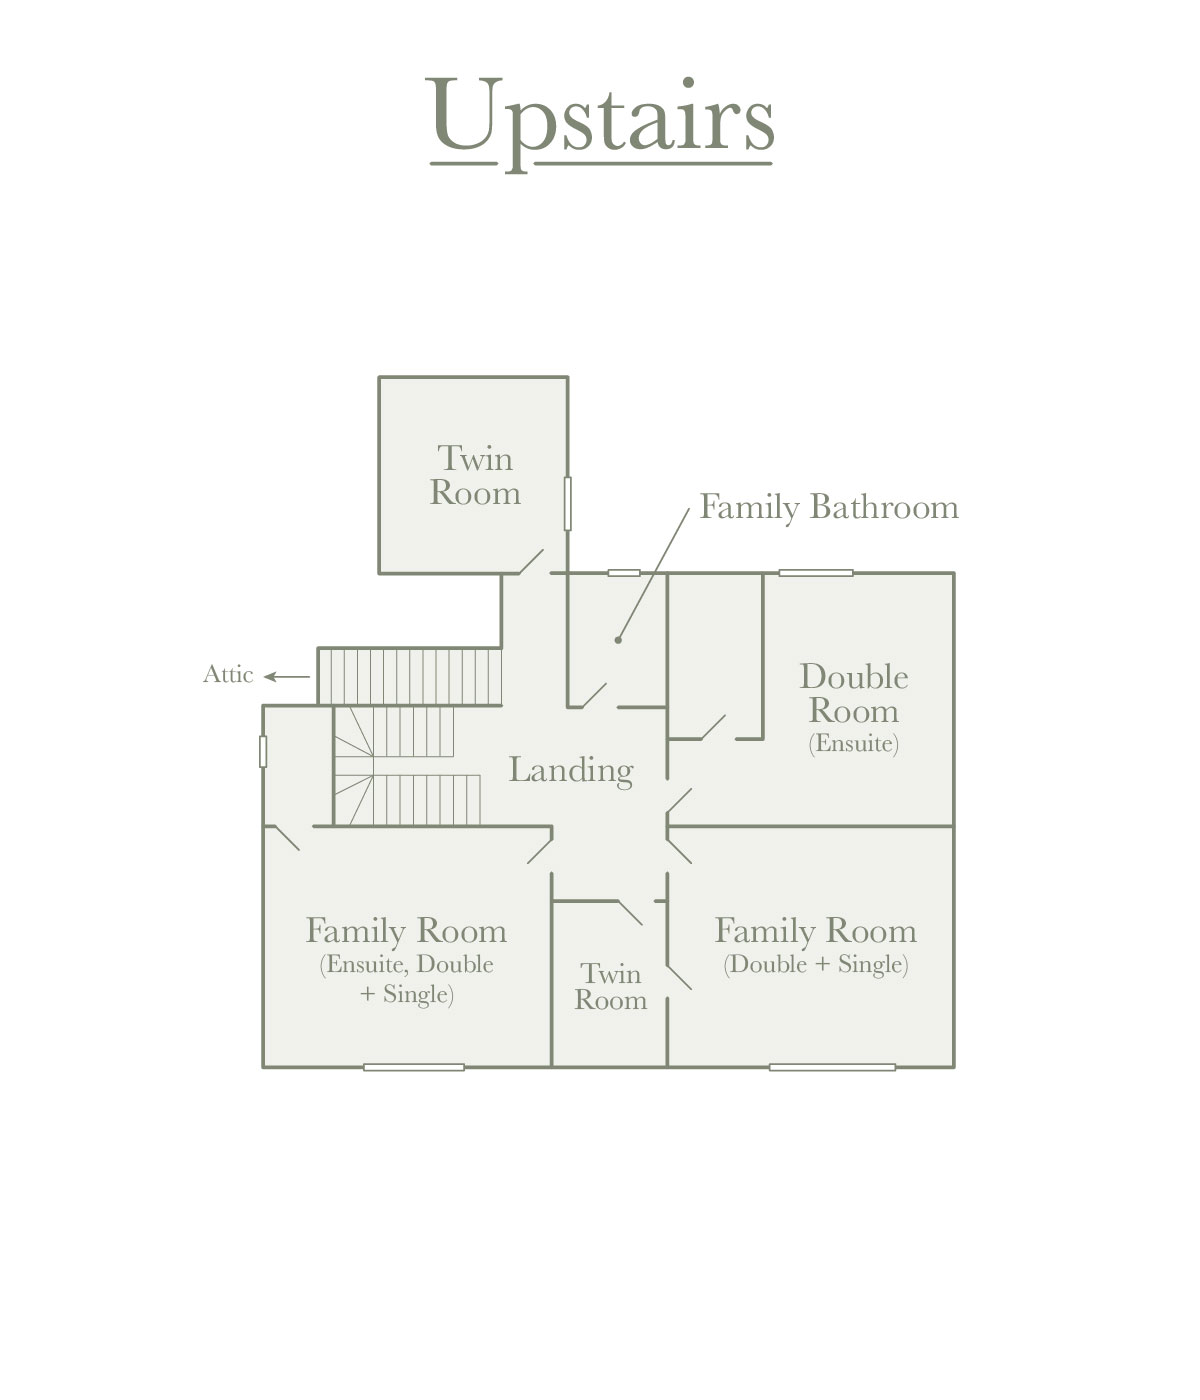 Upstairs Room Plan